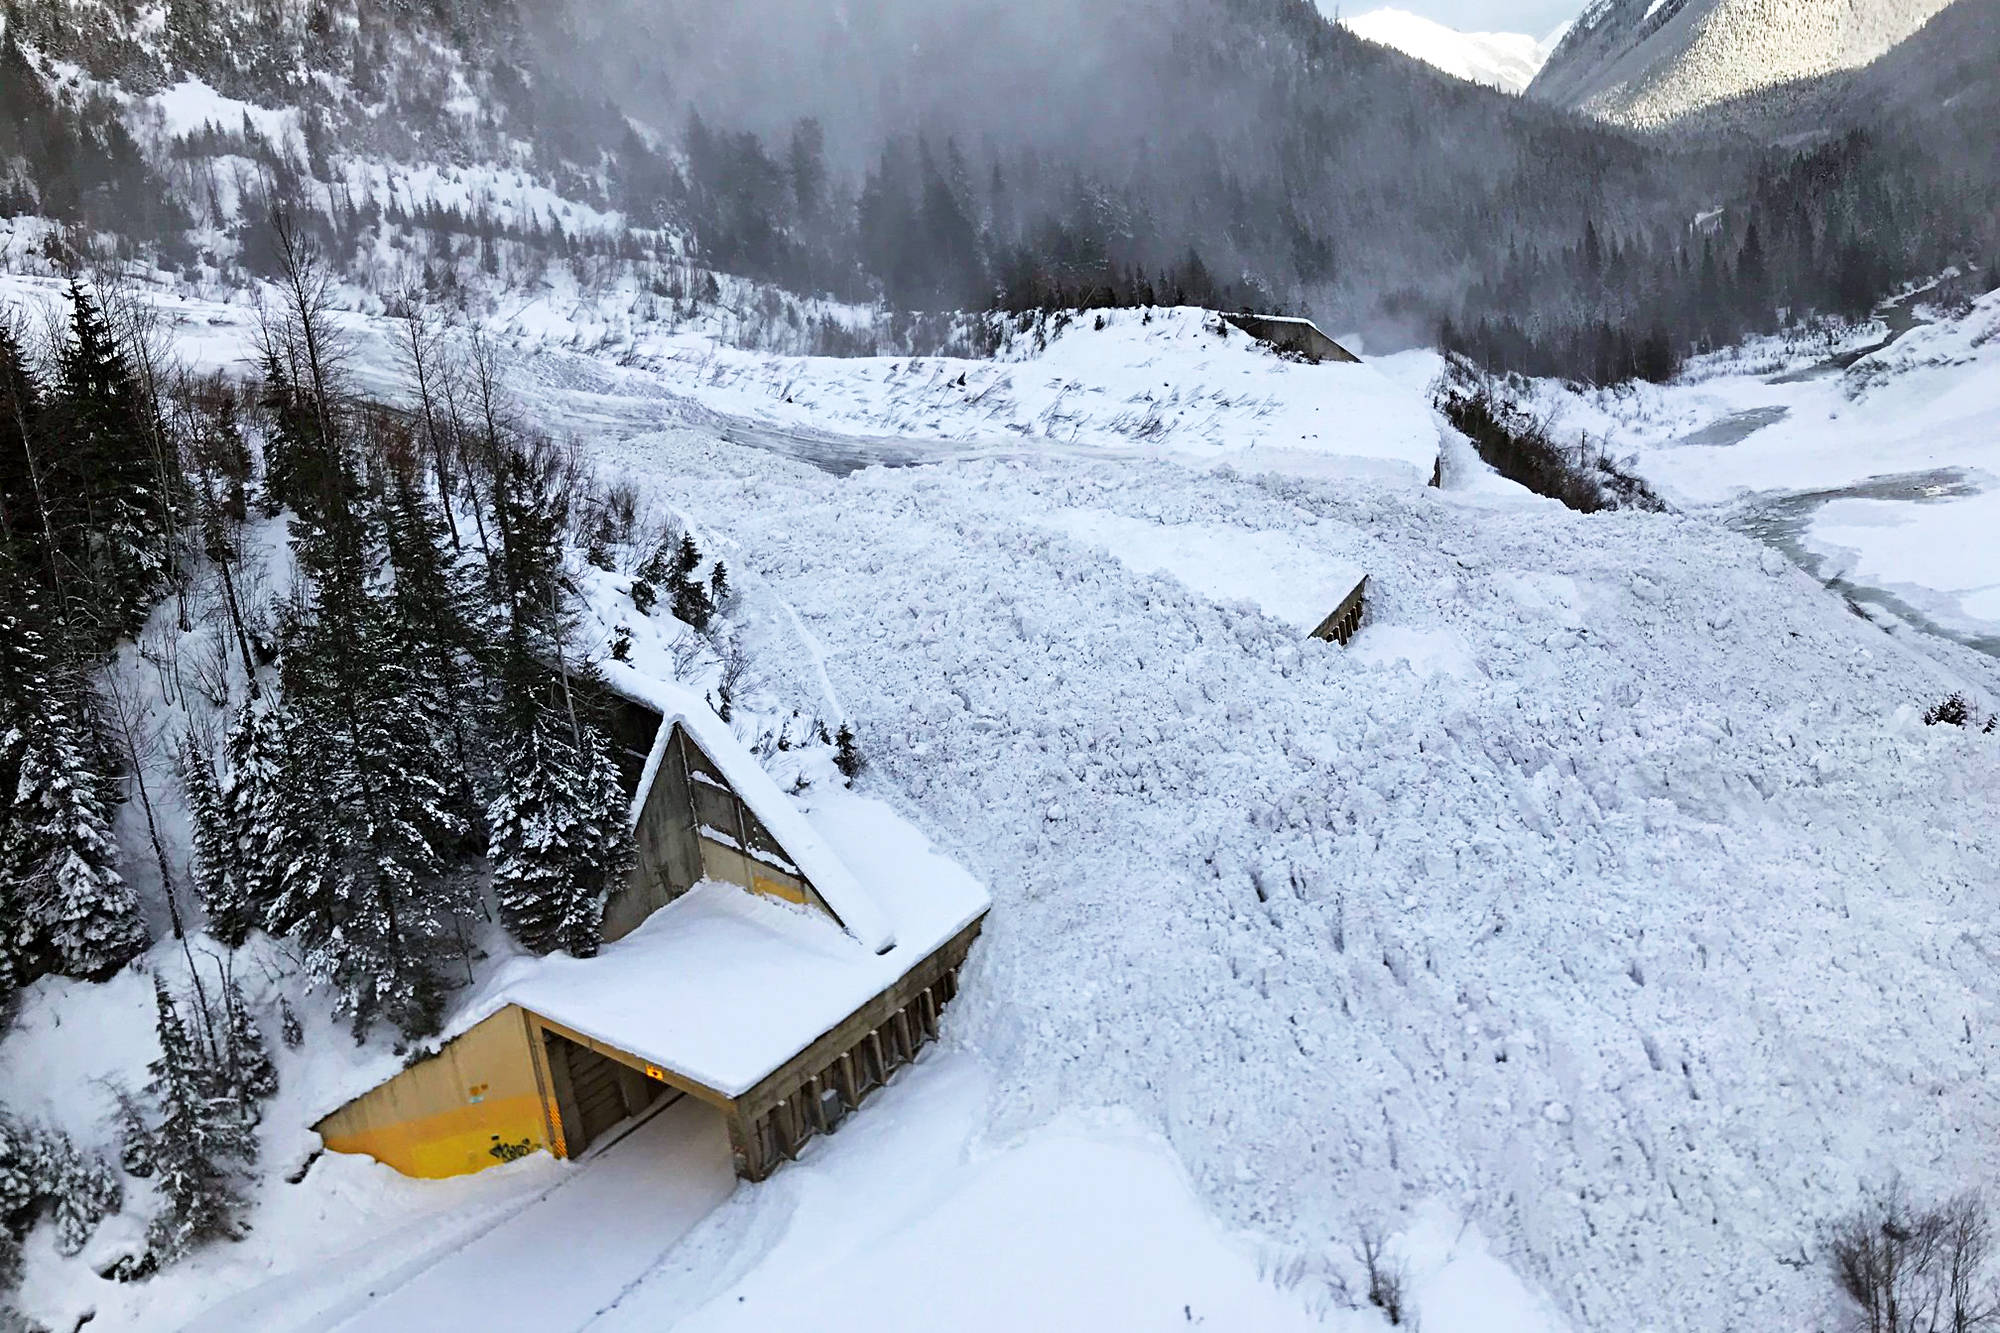 Avalanche control conducted on Thursday, Dec. 23, brought snow and debris safely down over top of the Lanark show shed on Highway 1 approximately 46 kilometres east of Revelstoke. (BC Transportation and Infrastructure photo)